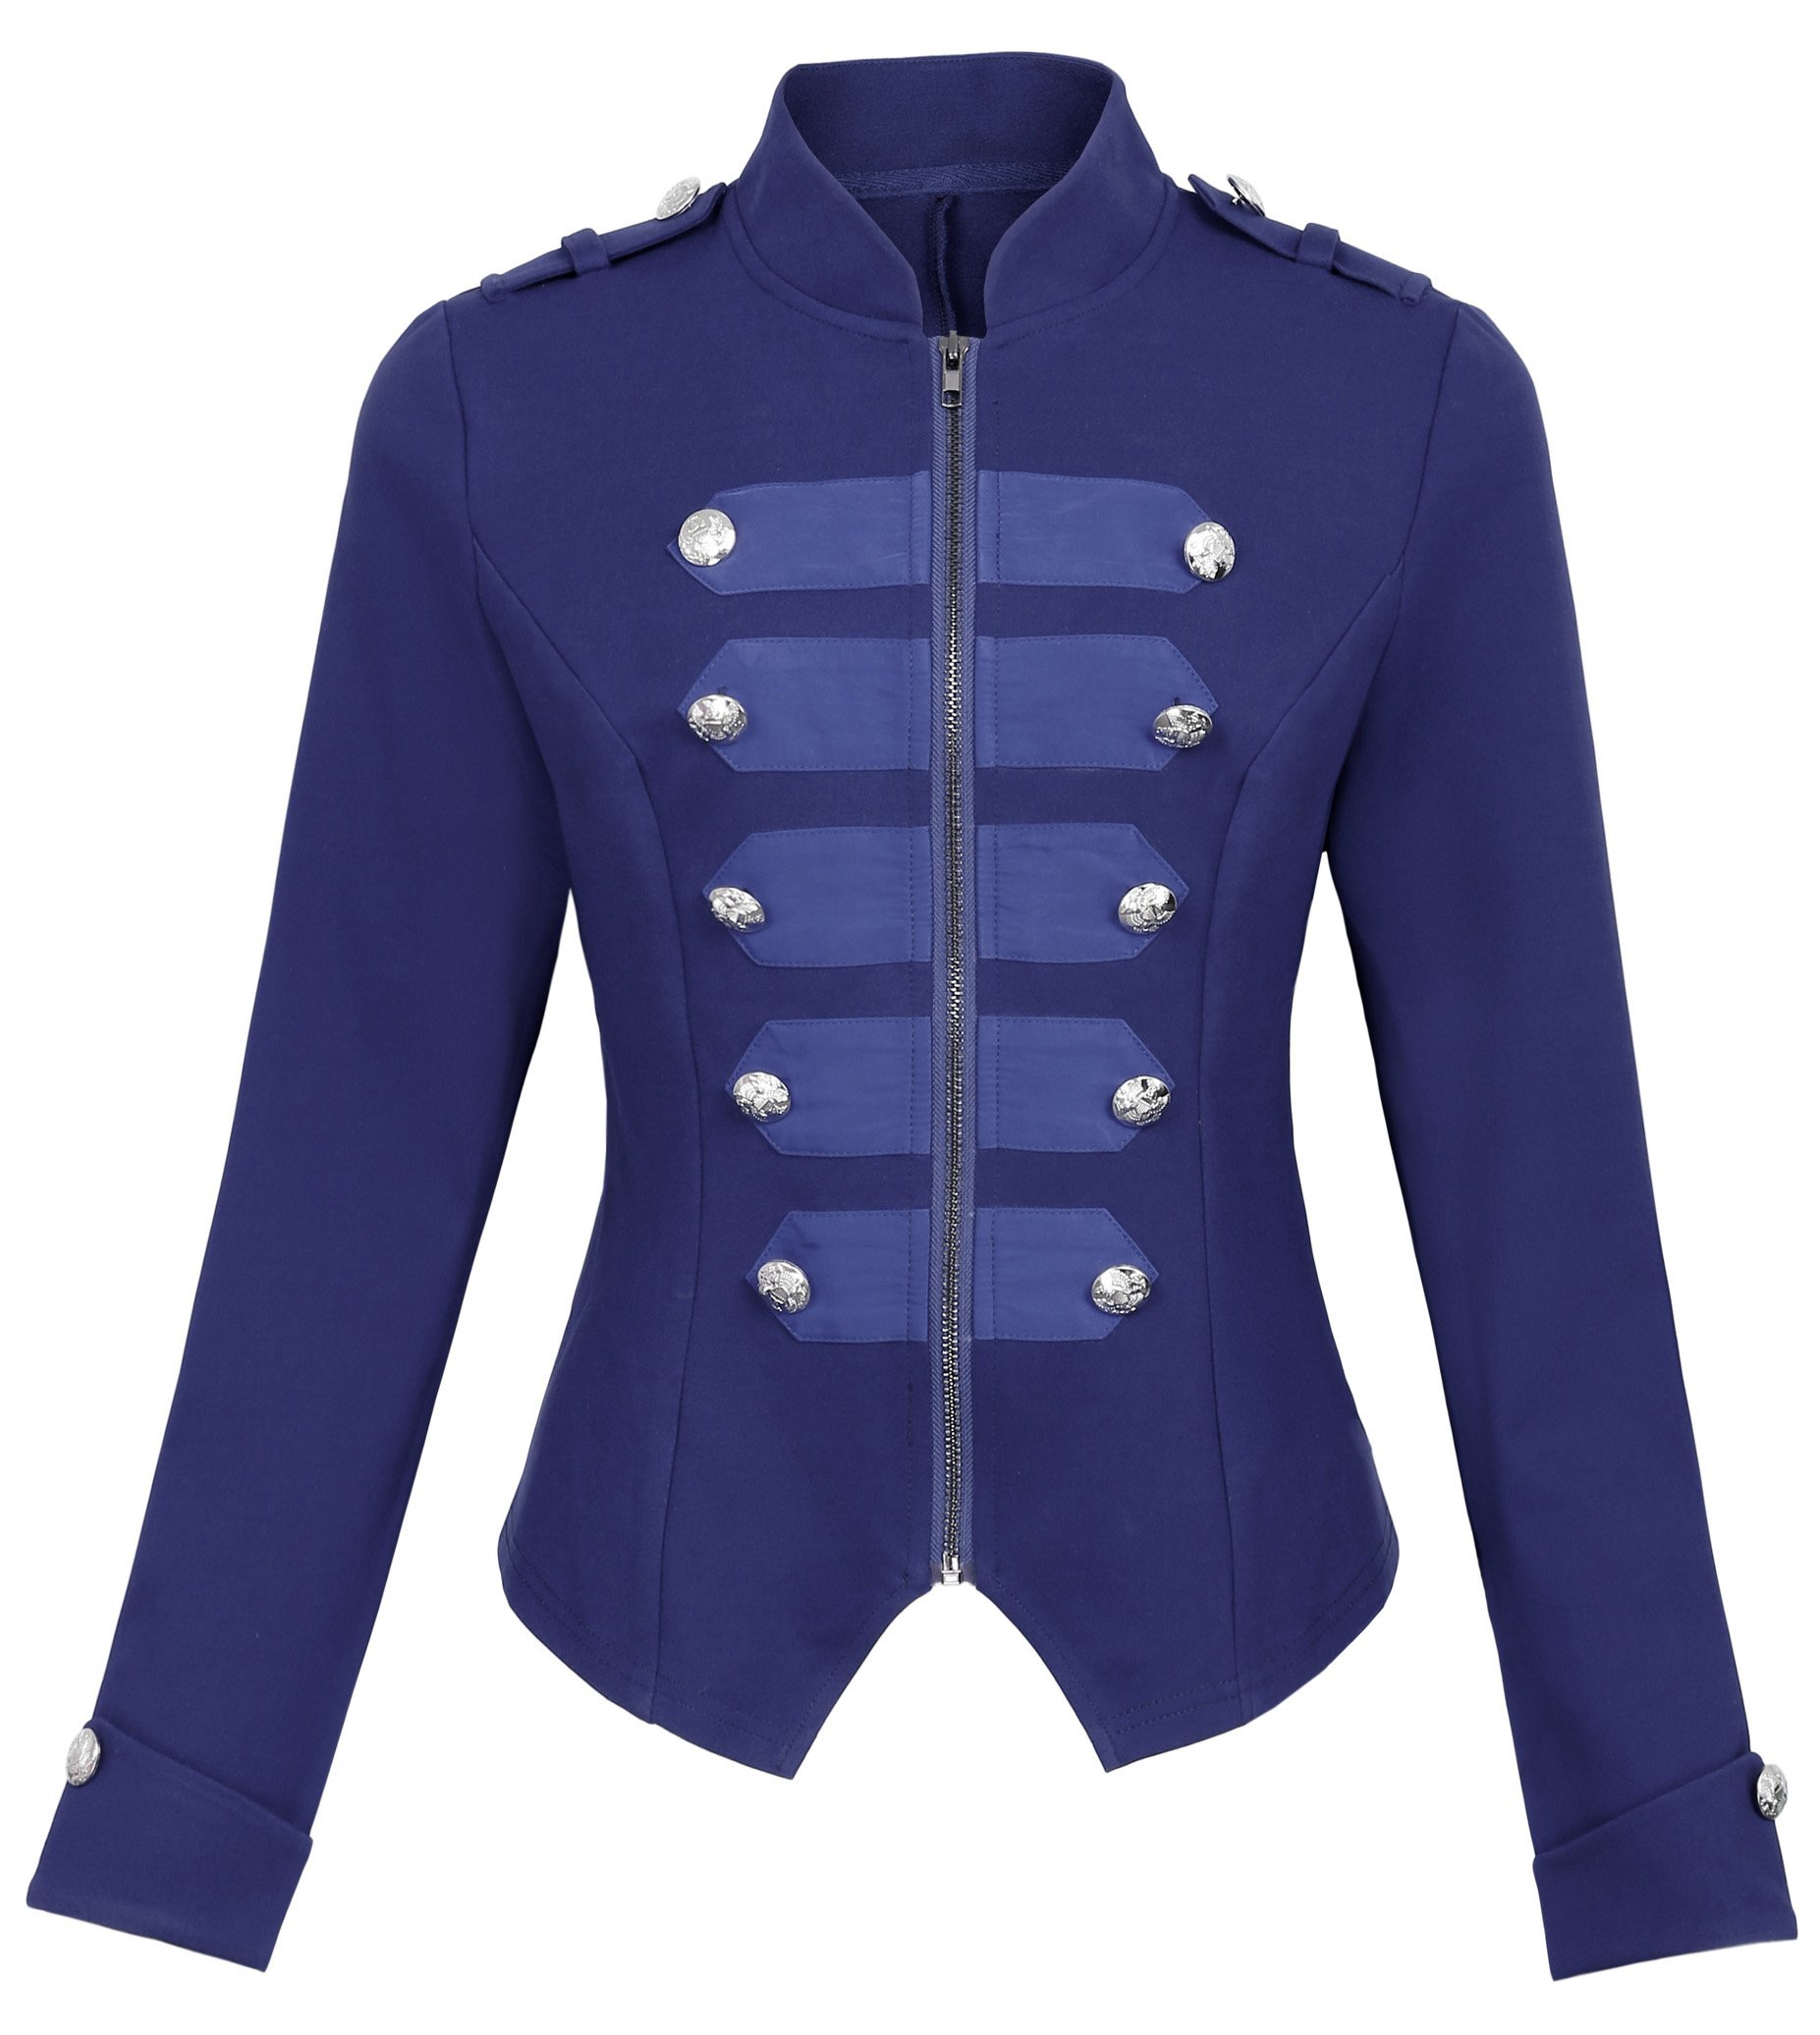 Kate Kasin Women Gothic Military Coats Steampunk Circus Jacket for Halloween KK464-4 Navy Blue Size S